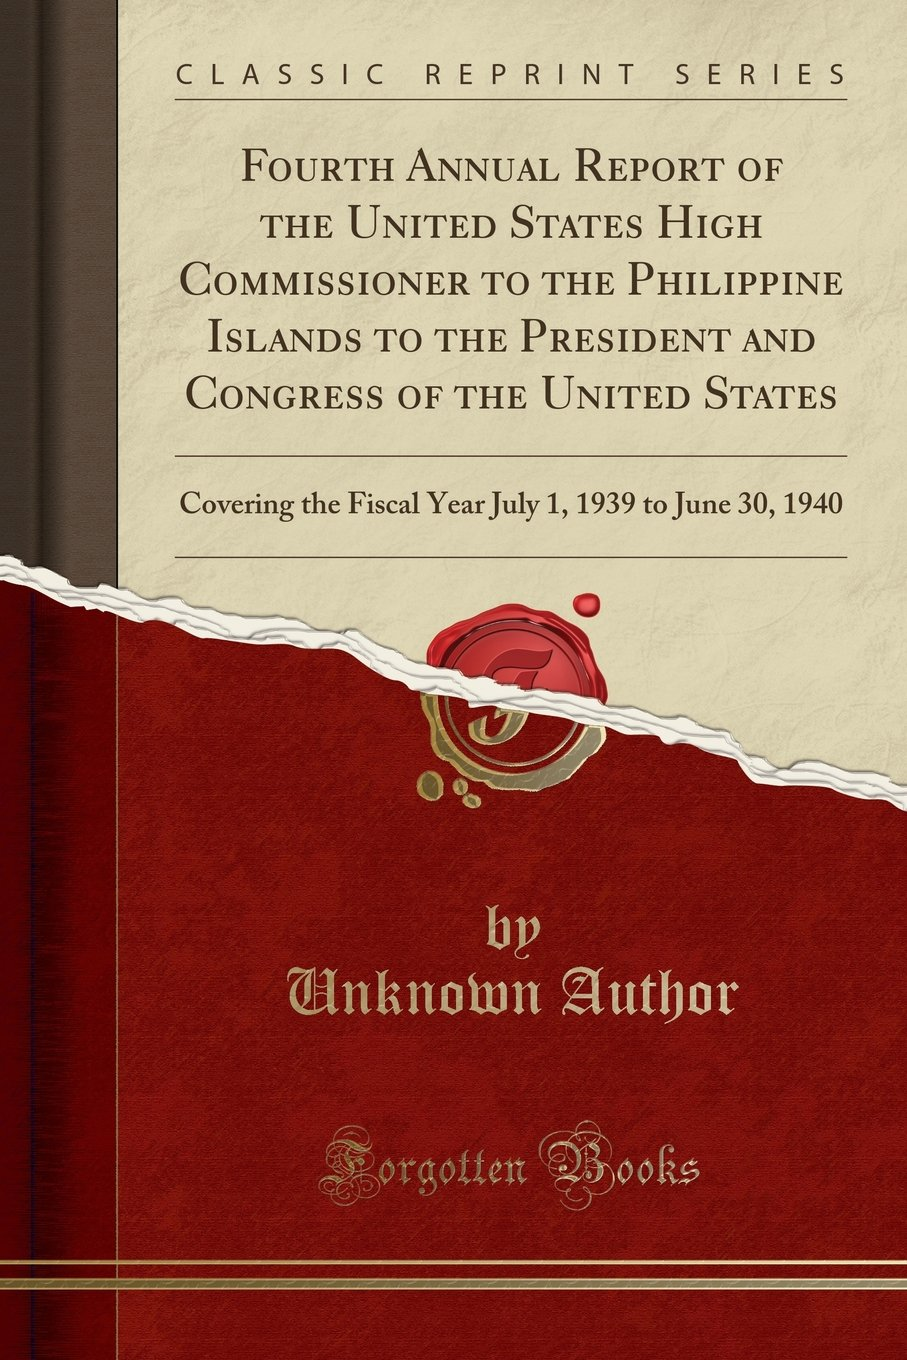 Fourth Annual Report of the United States High Commissioner to the Philippine Islands to the President and Congress of the United States: Covering the ... 1, 1939 to June 30, 1940 (Classic Reprint) pdf